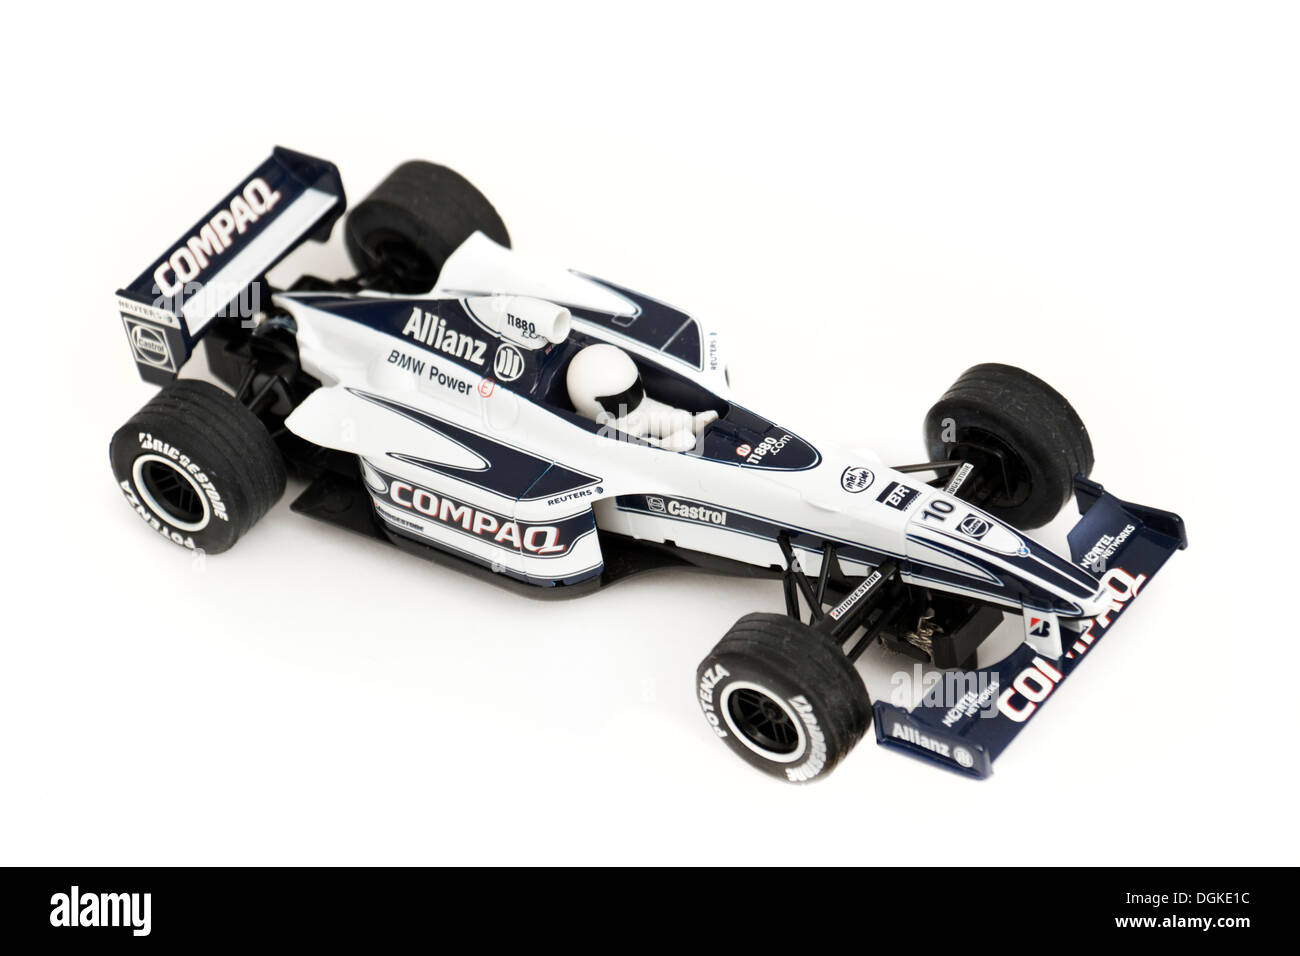 Scalextric Formula One racing car - Stock Image